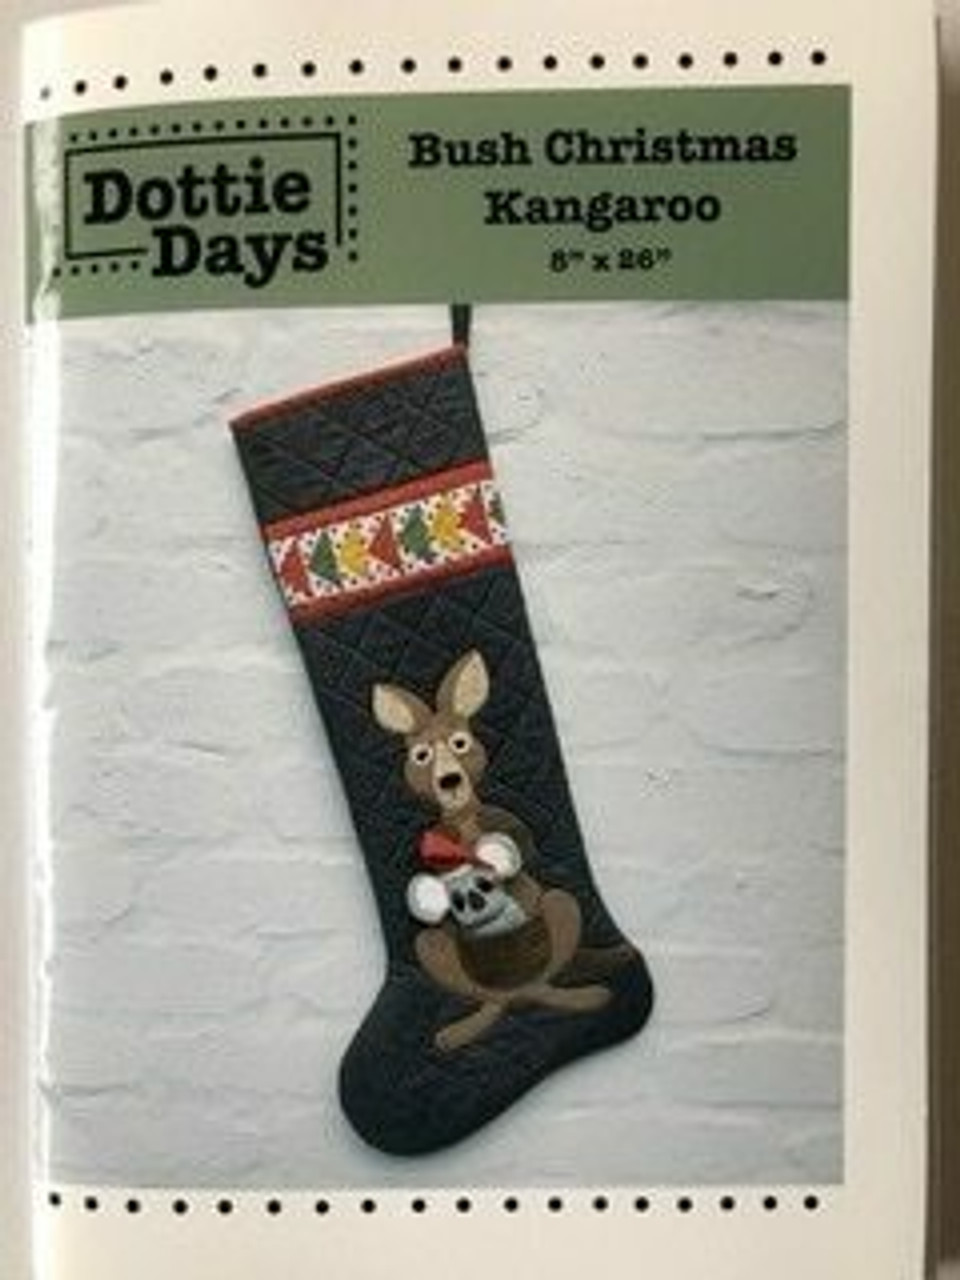 Dottie Days : Bush Christmas Kangaroo